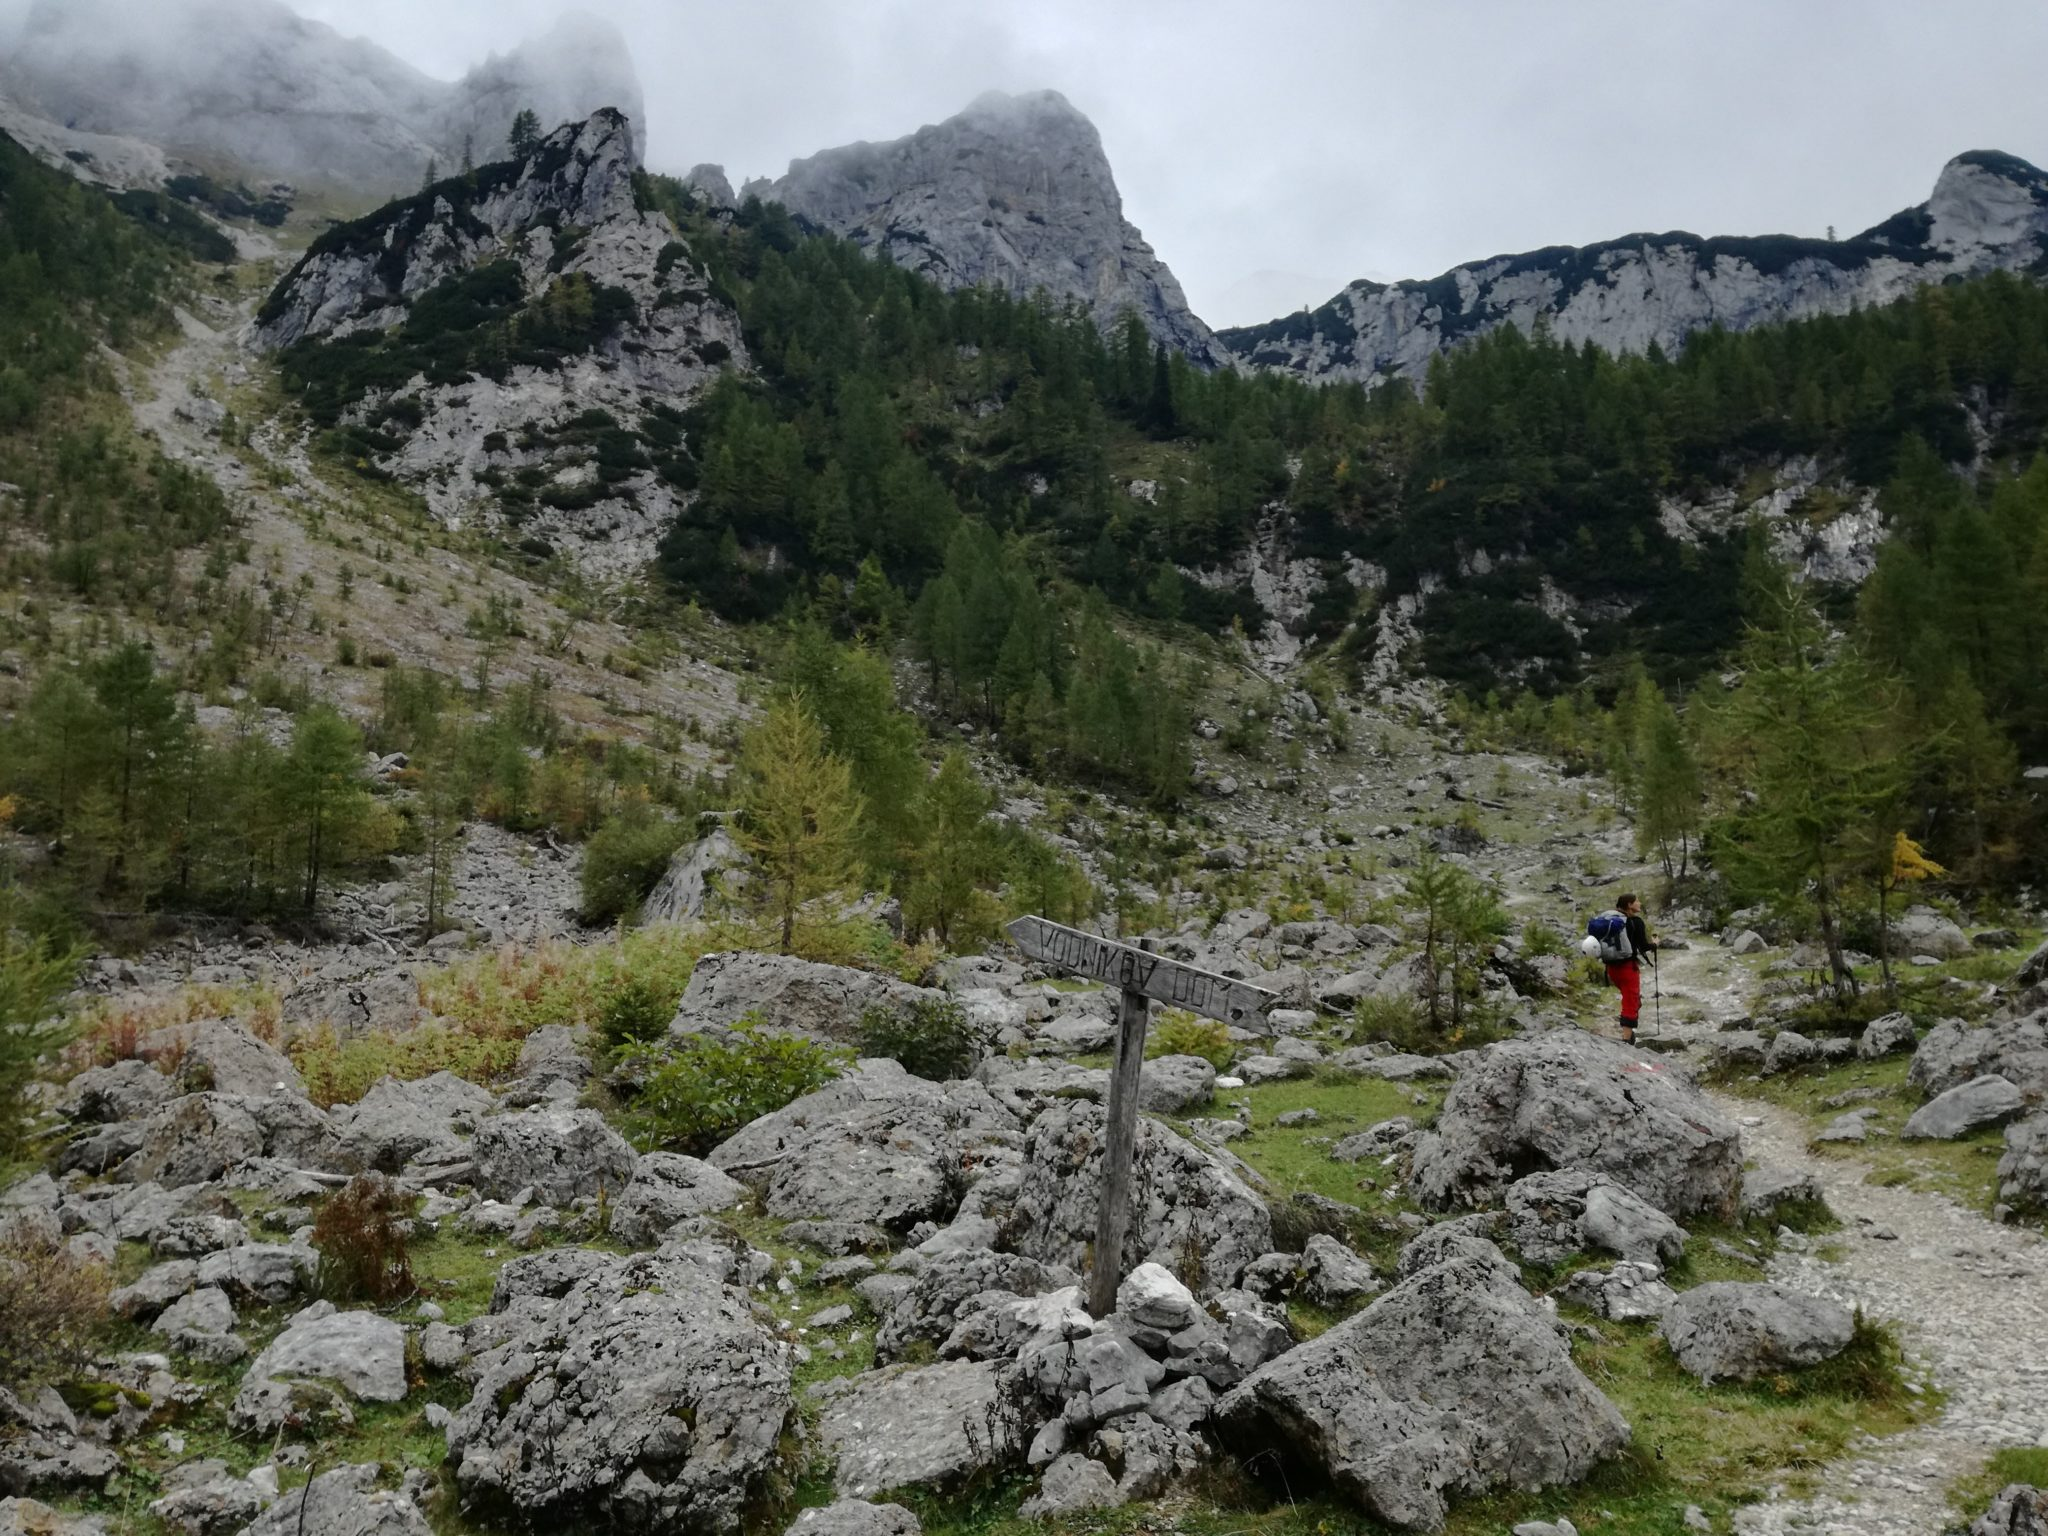 Approaching an alpine meadow called Zgornja Krma with its little hut Prgarca.